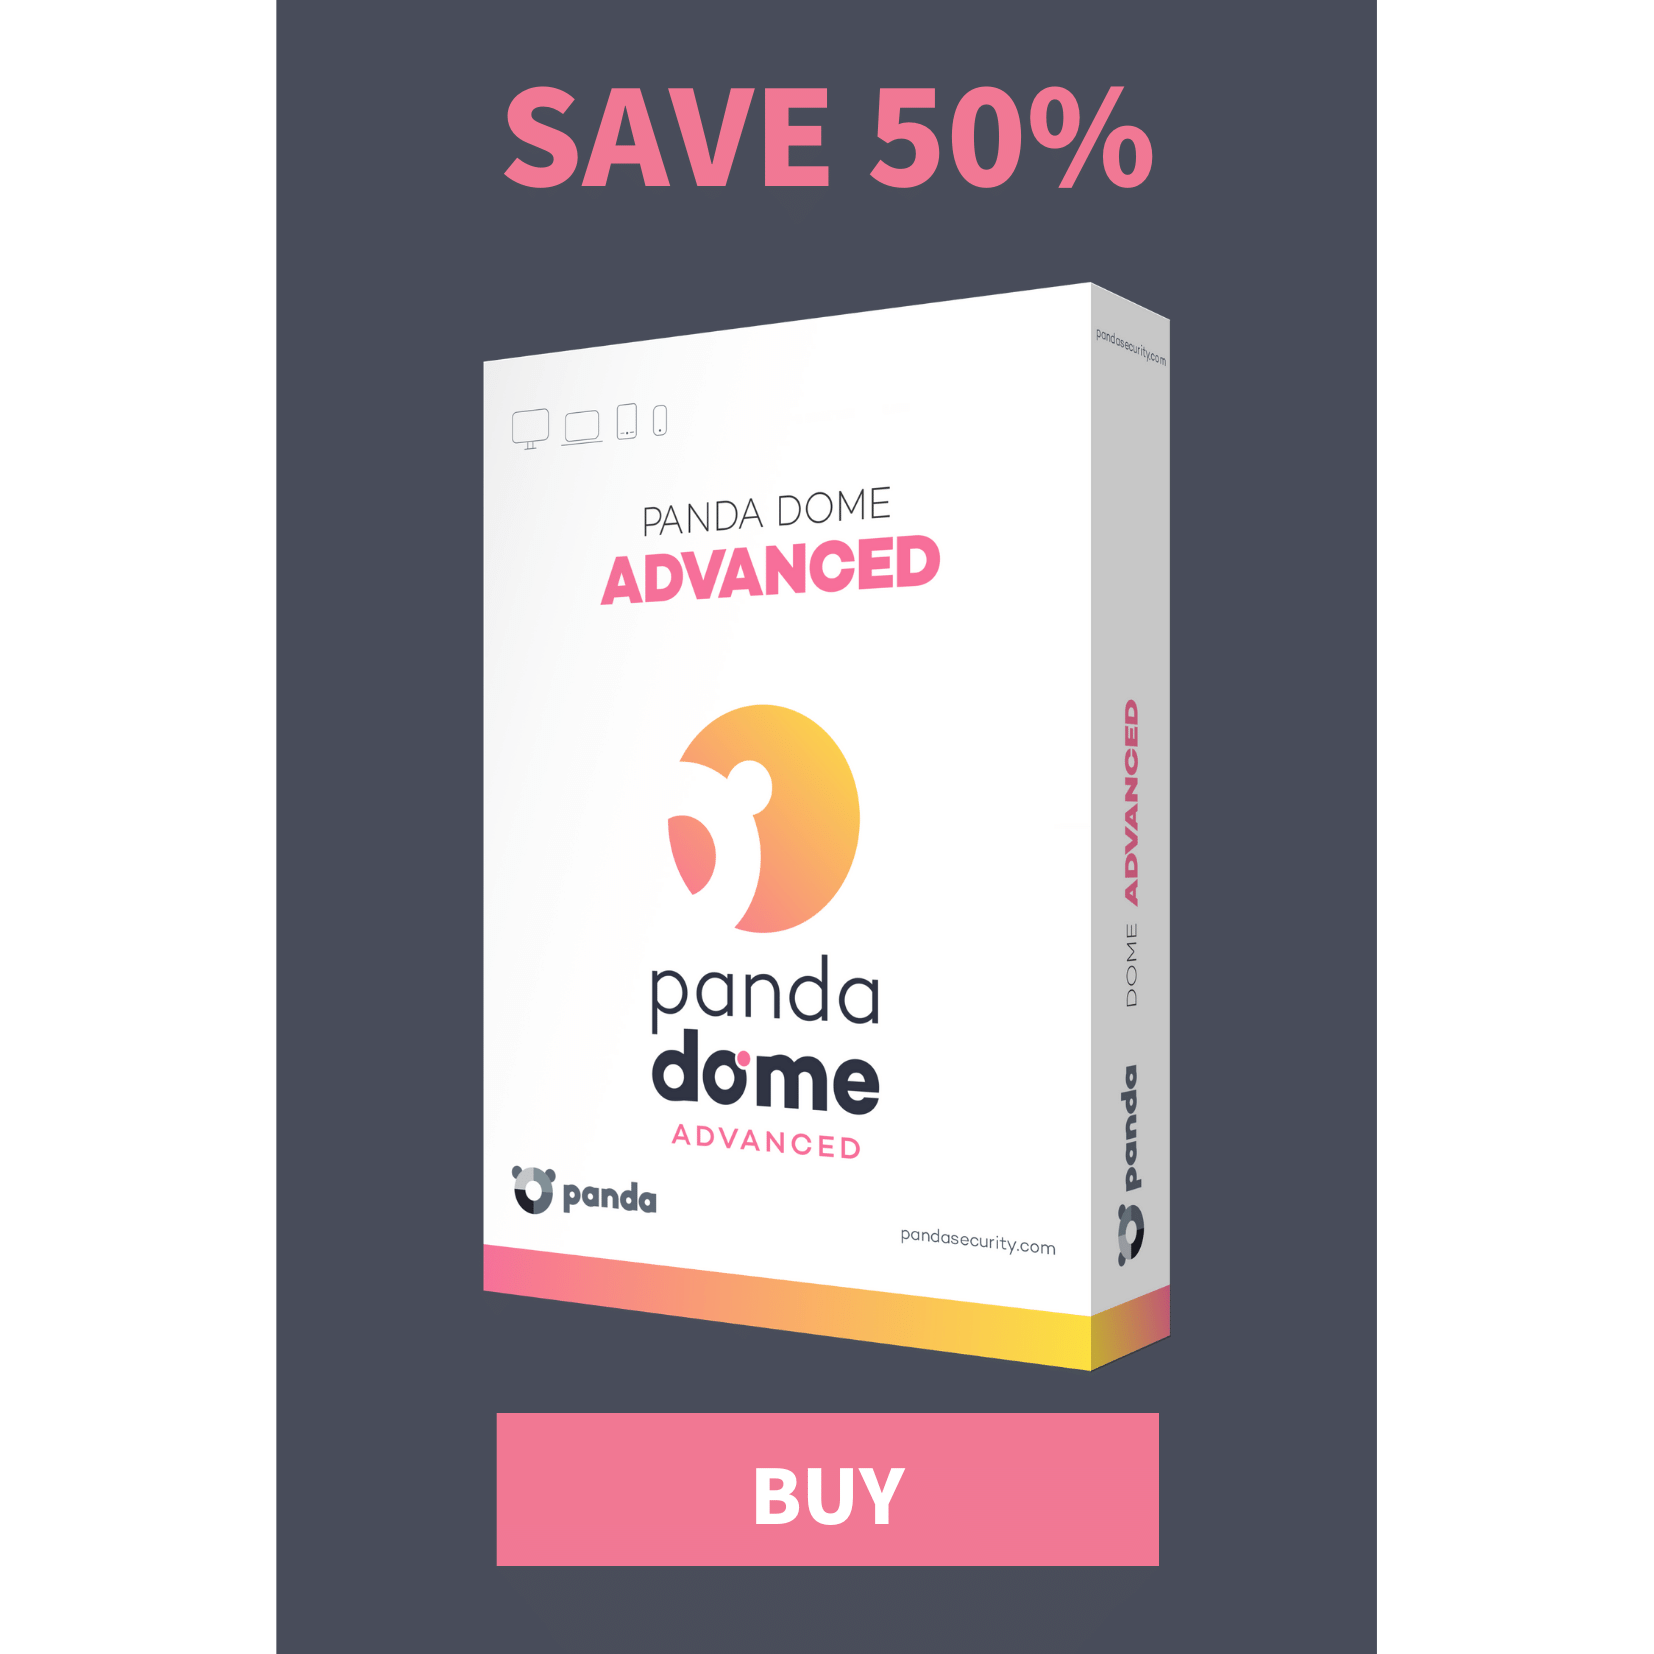 Download Panda Dome Advanced